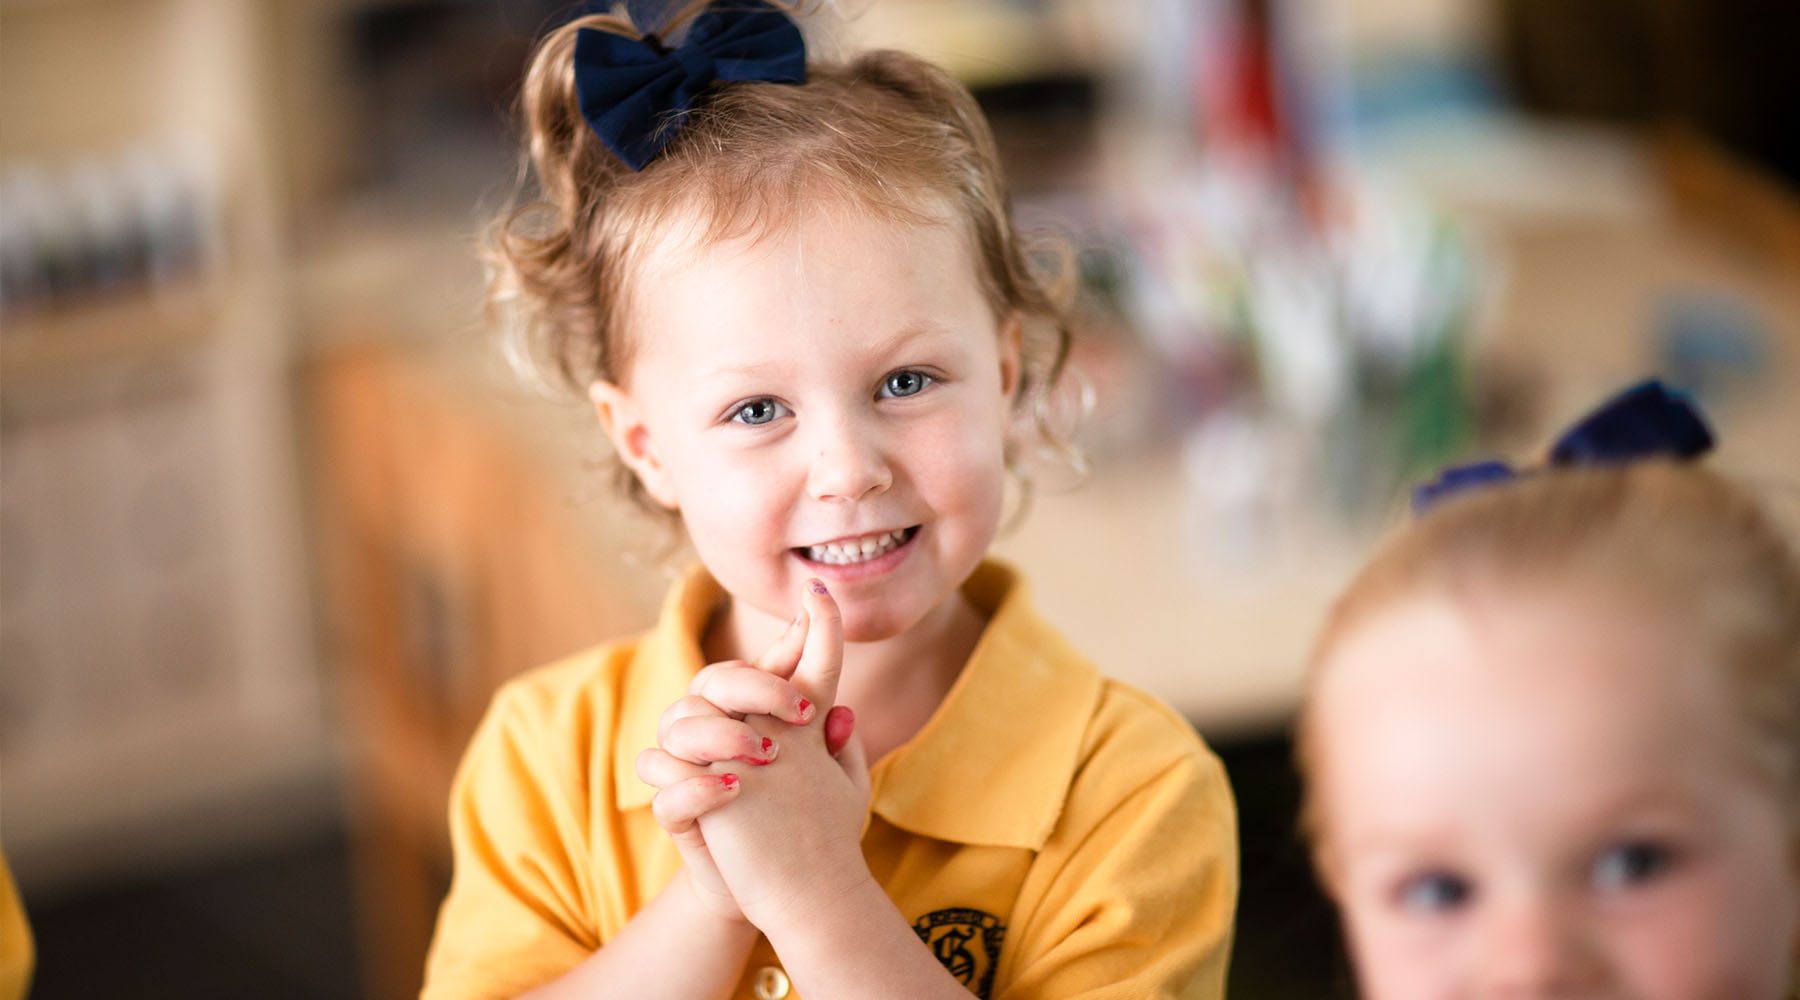 Early learning student image